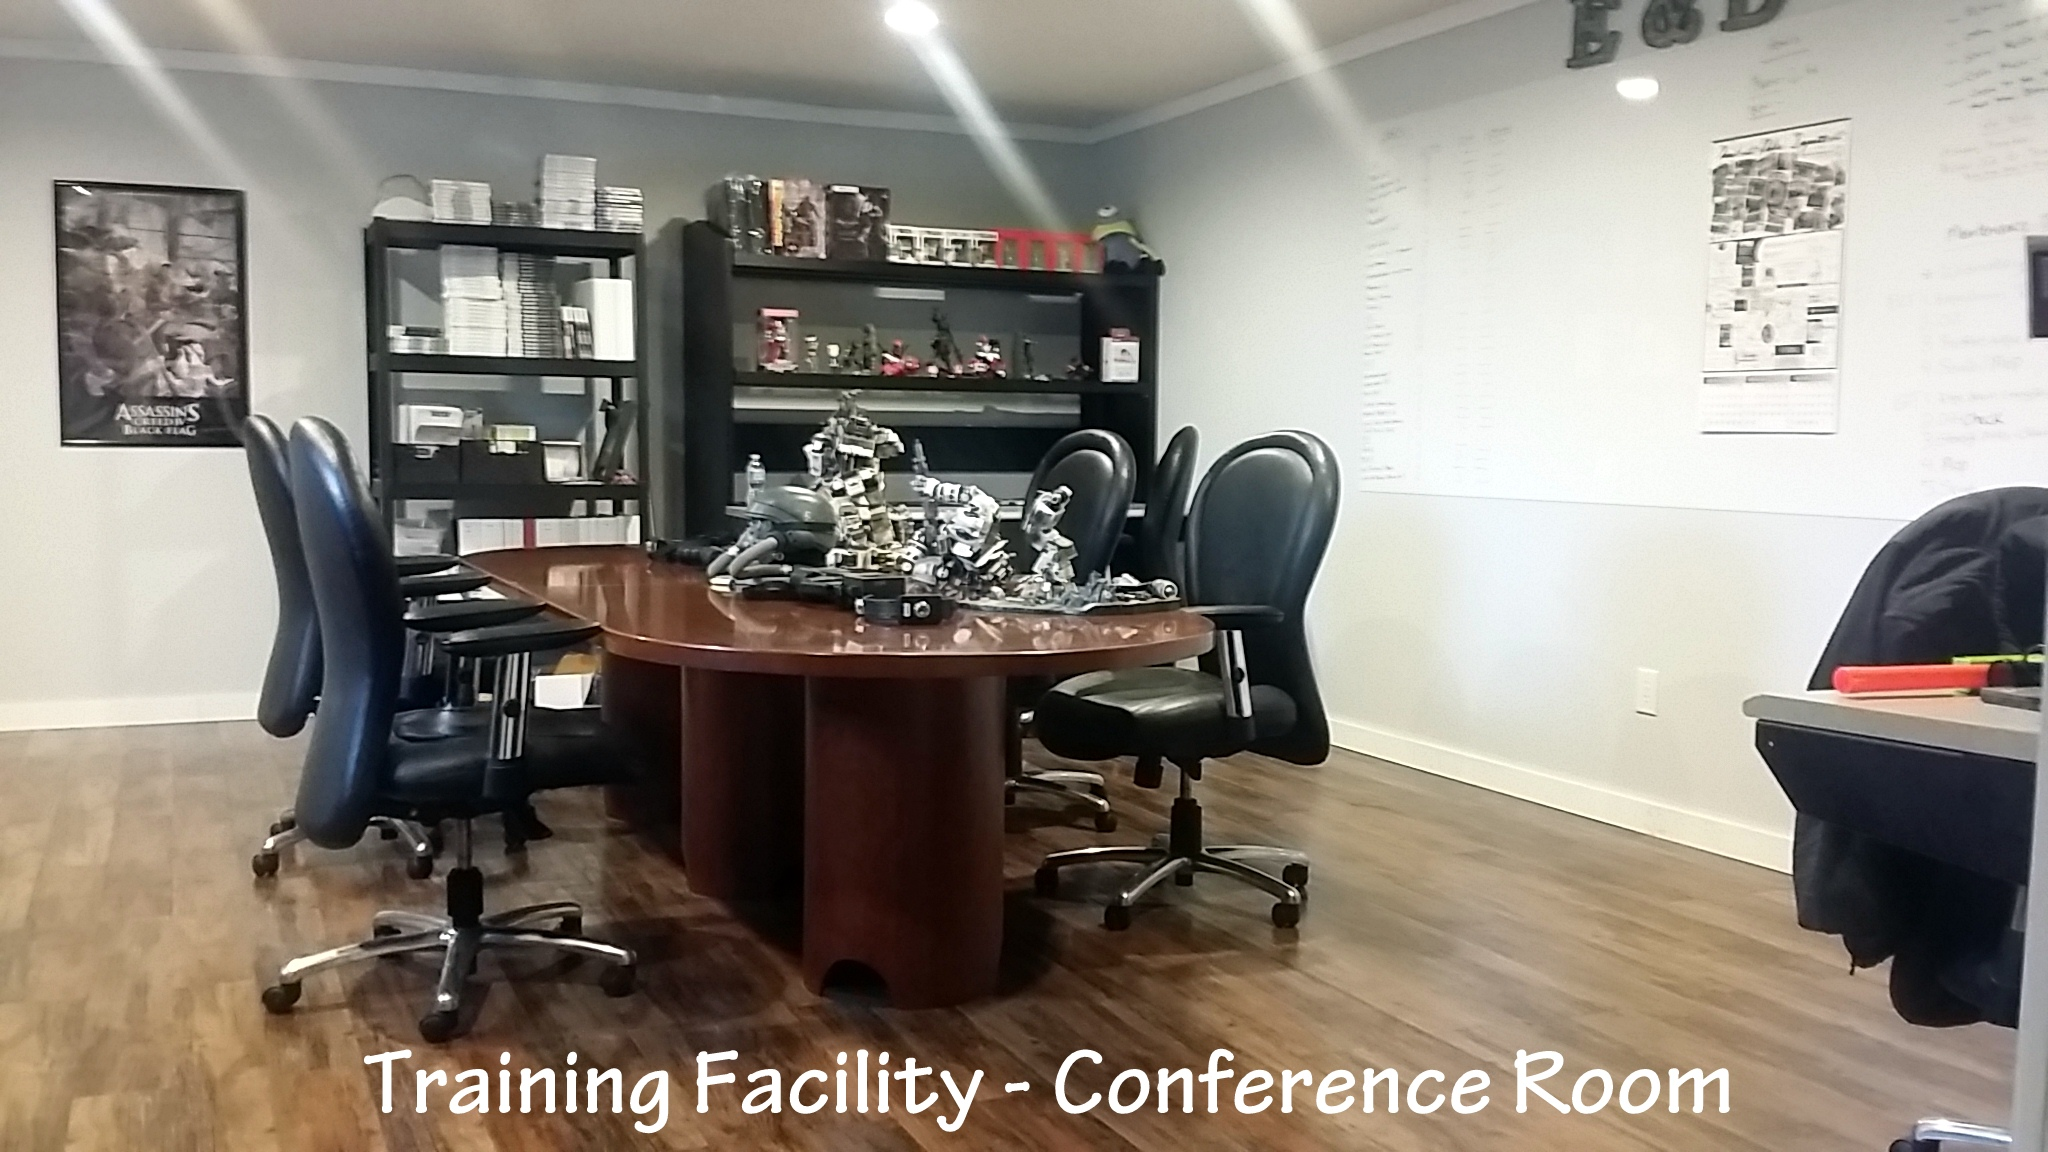 Training Facility - Conference Room 2